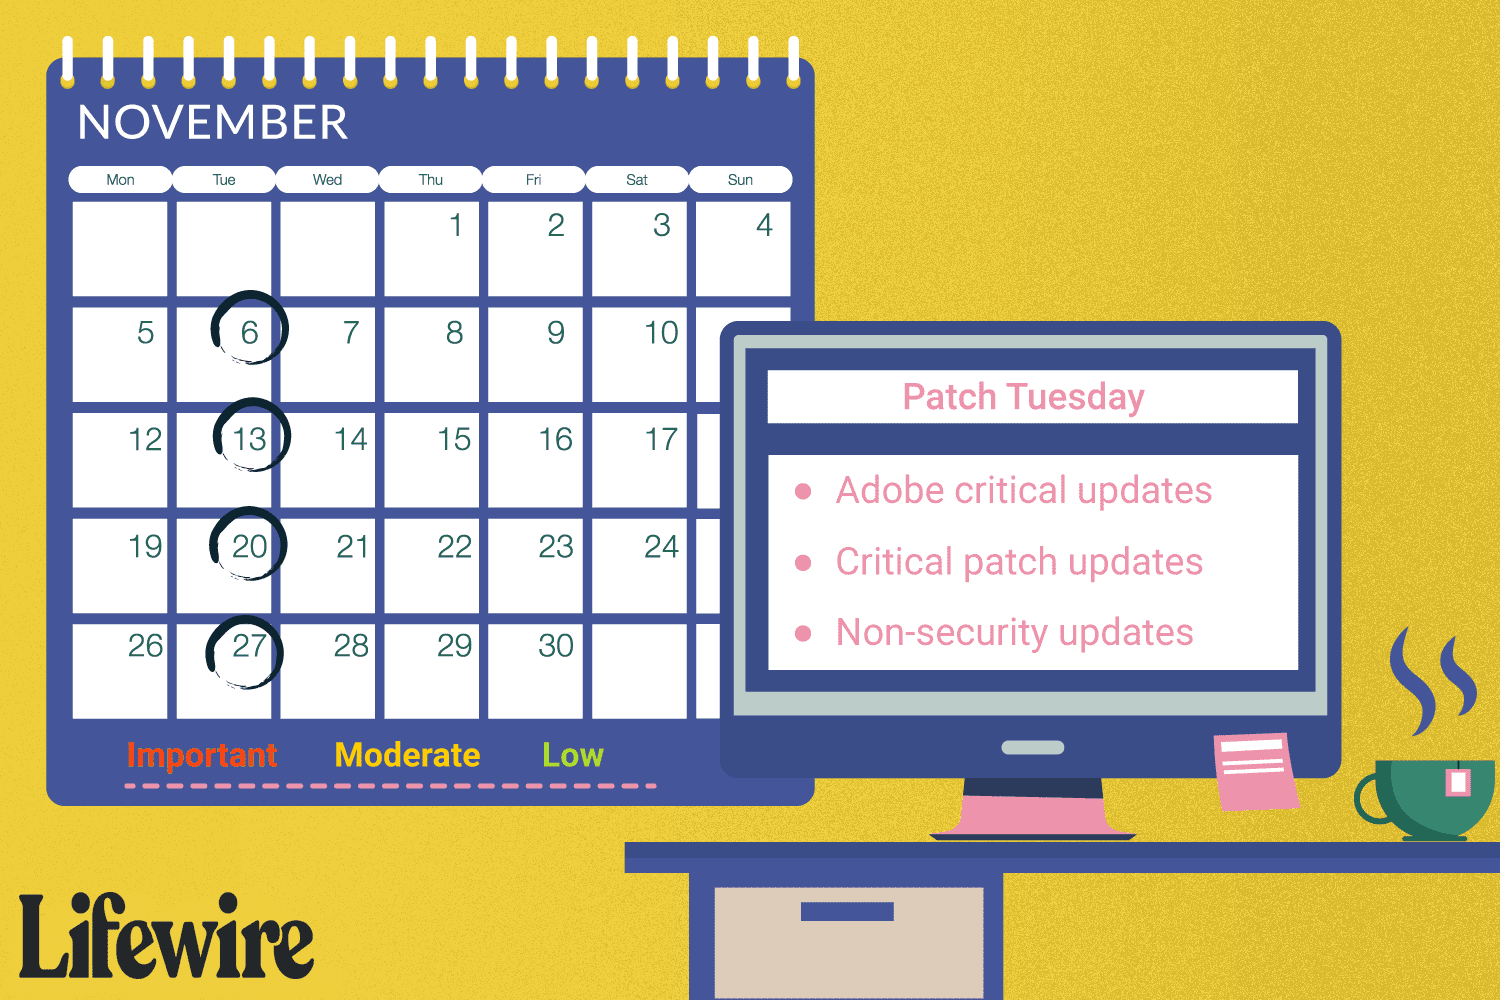 An illustration of the important updates released on Patch Tuesday.